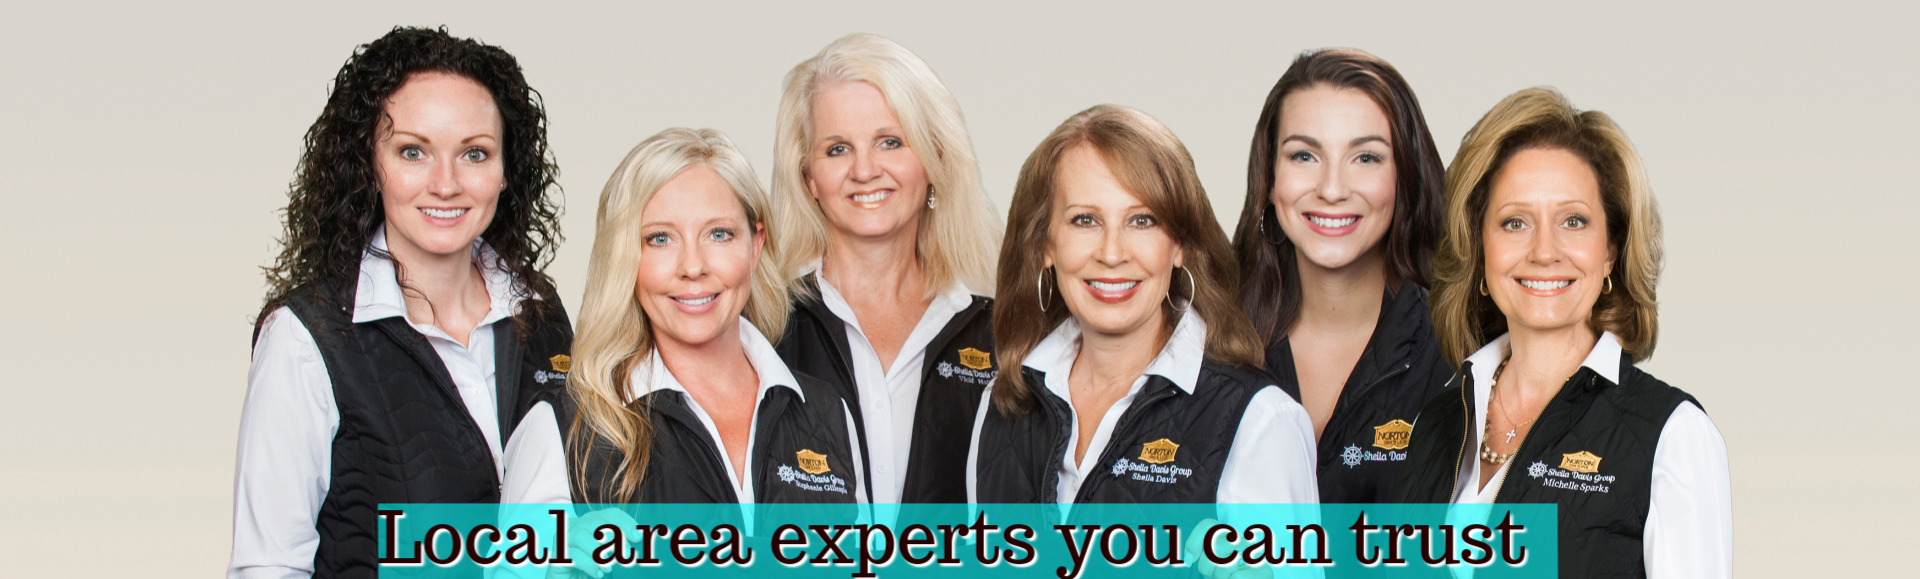 Local area experts 2020